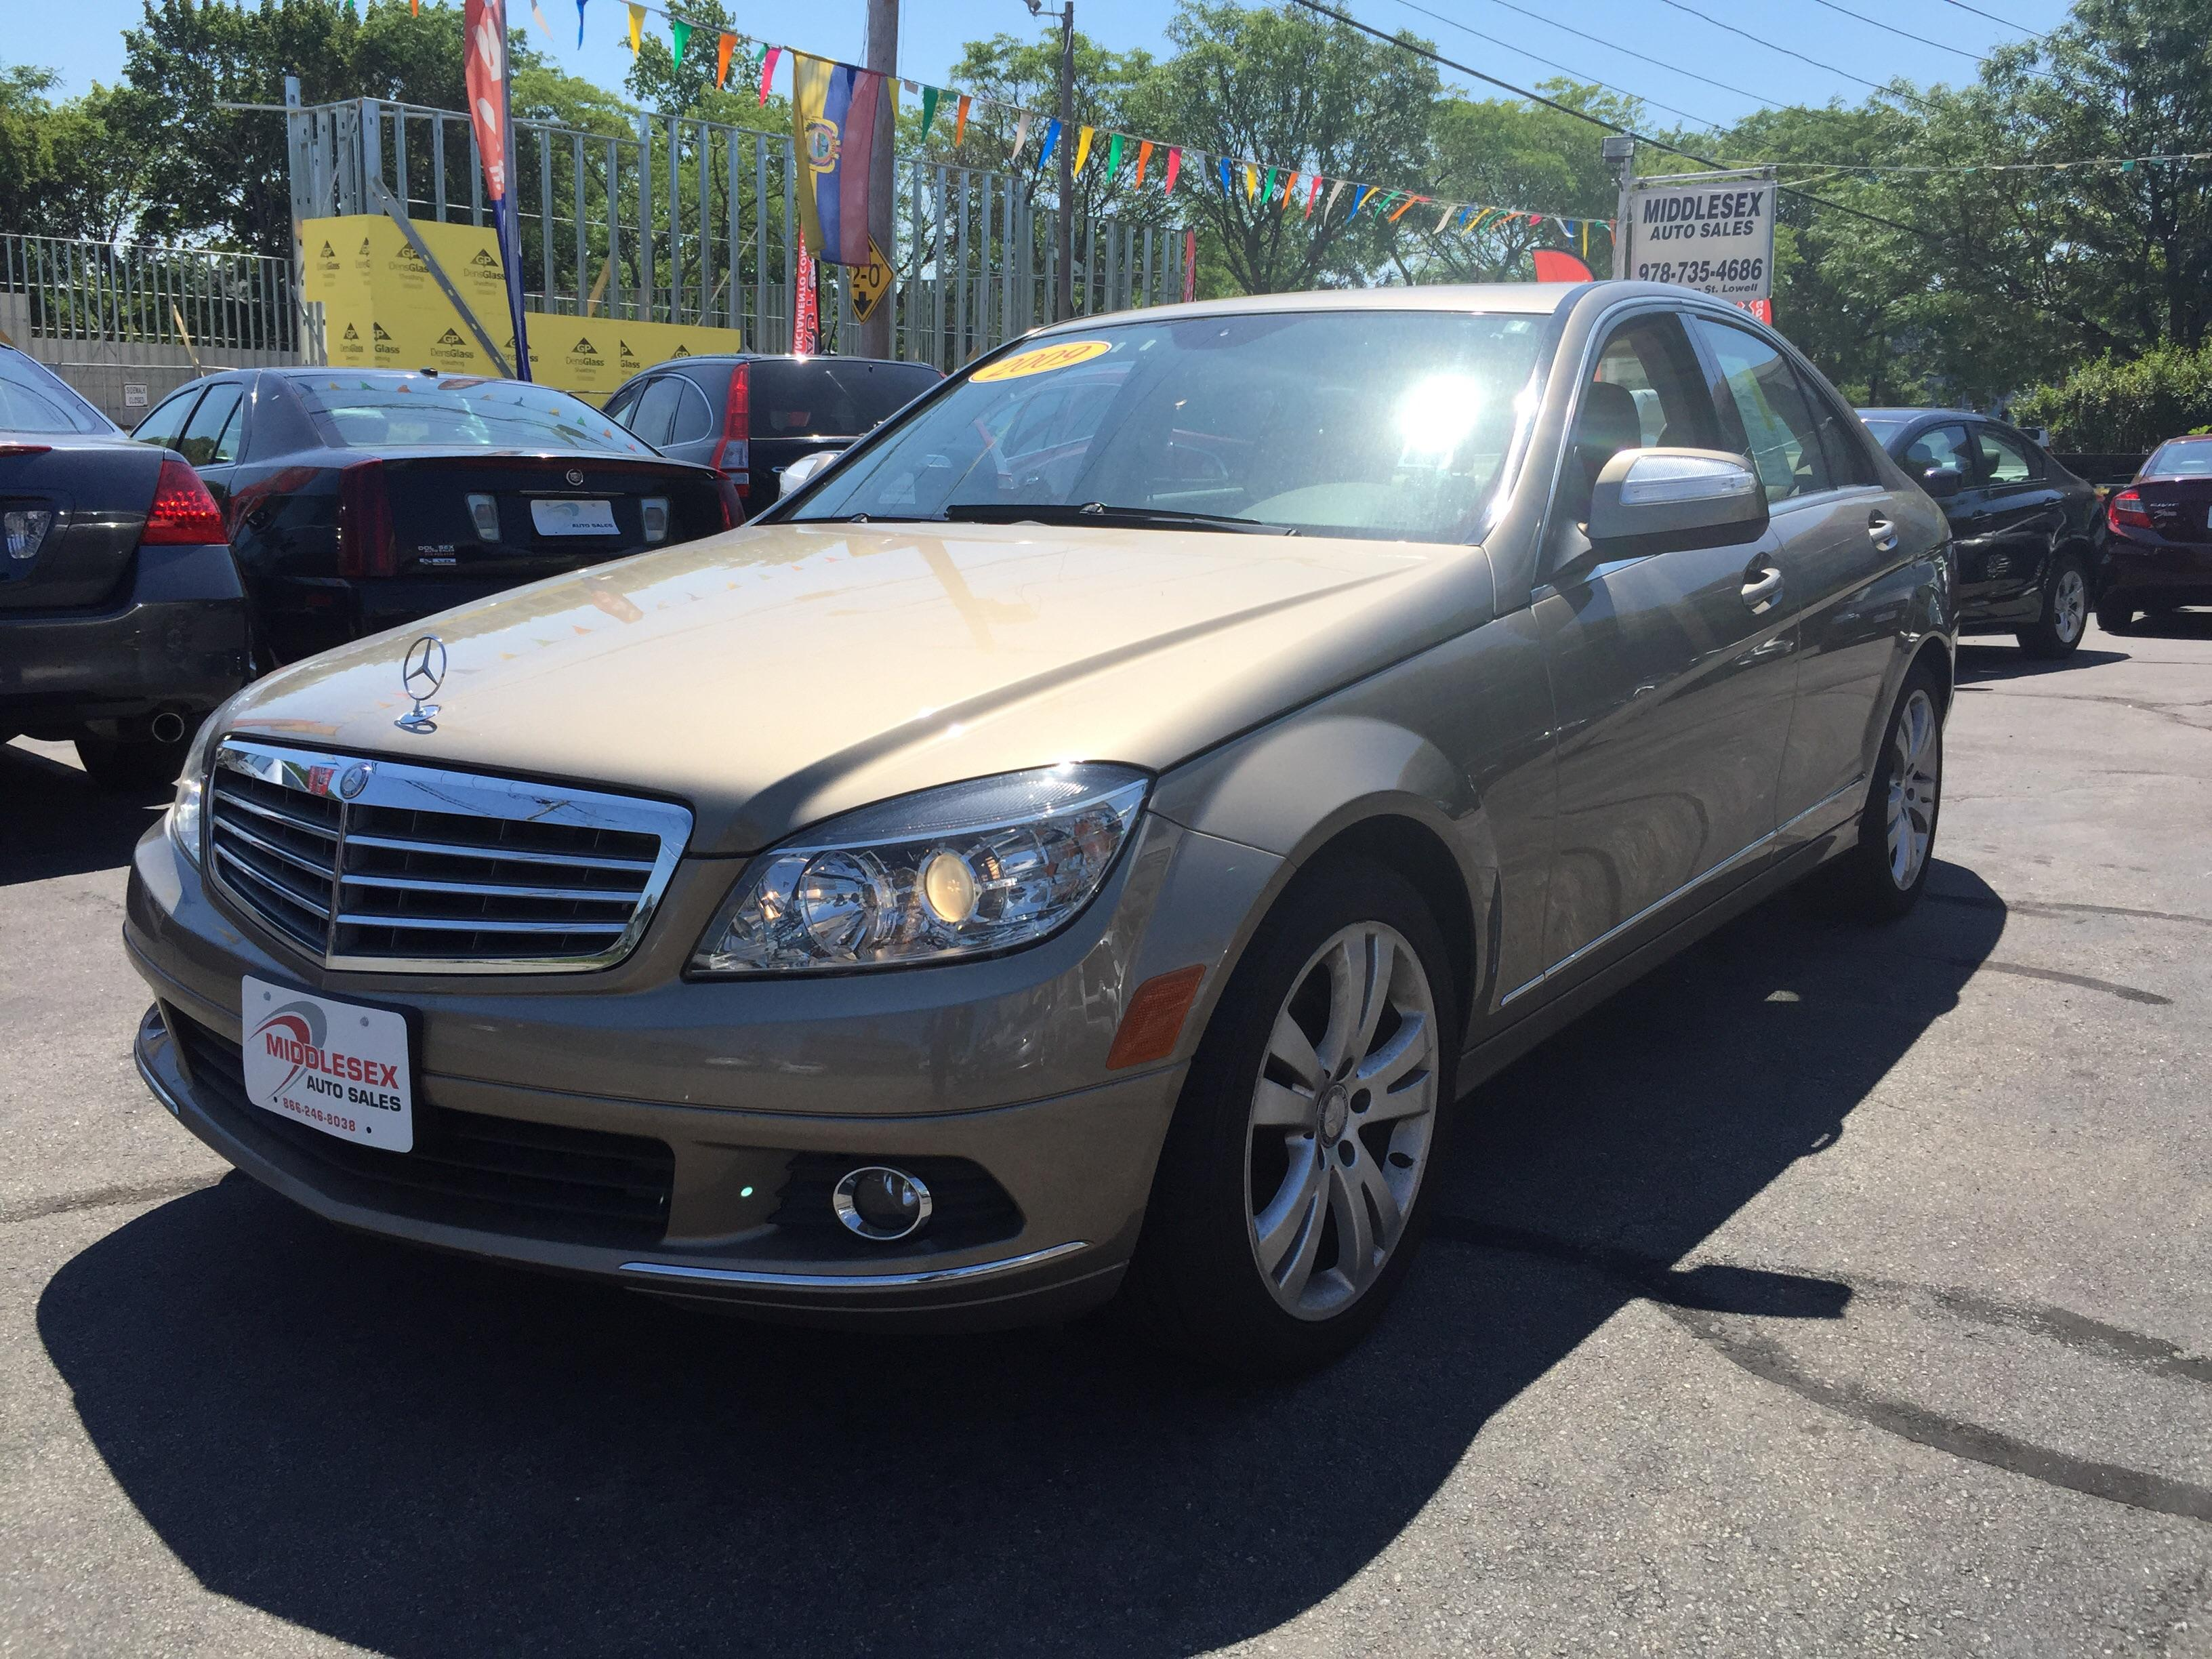 Rental Cars Near Lowell Ma